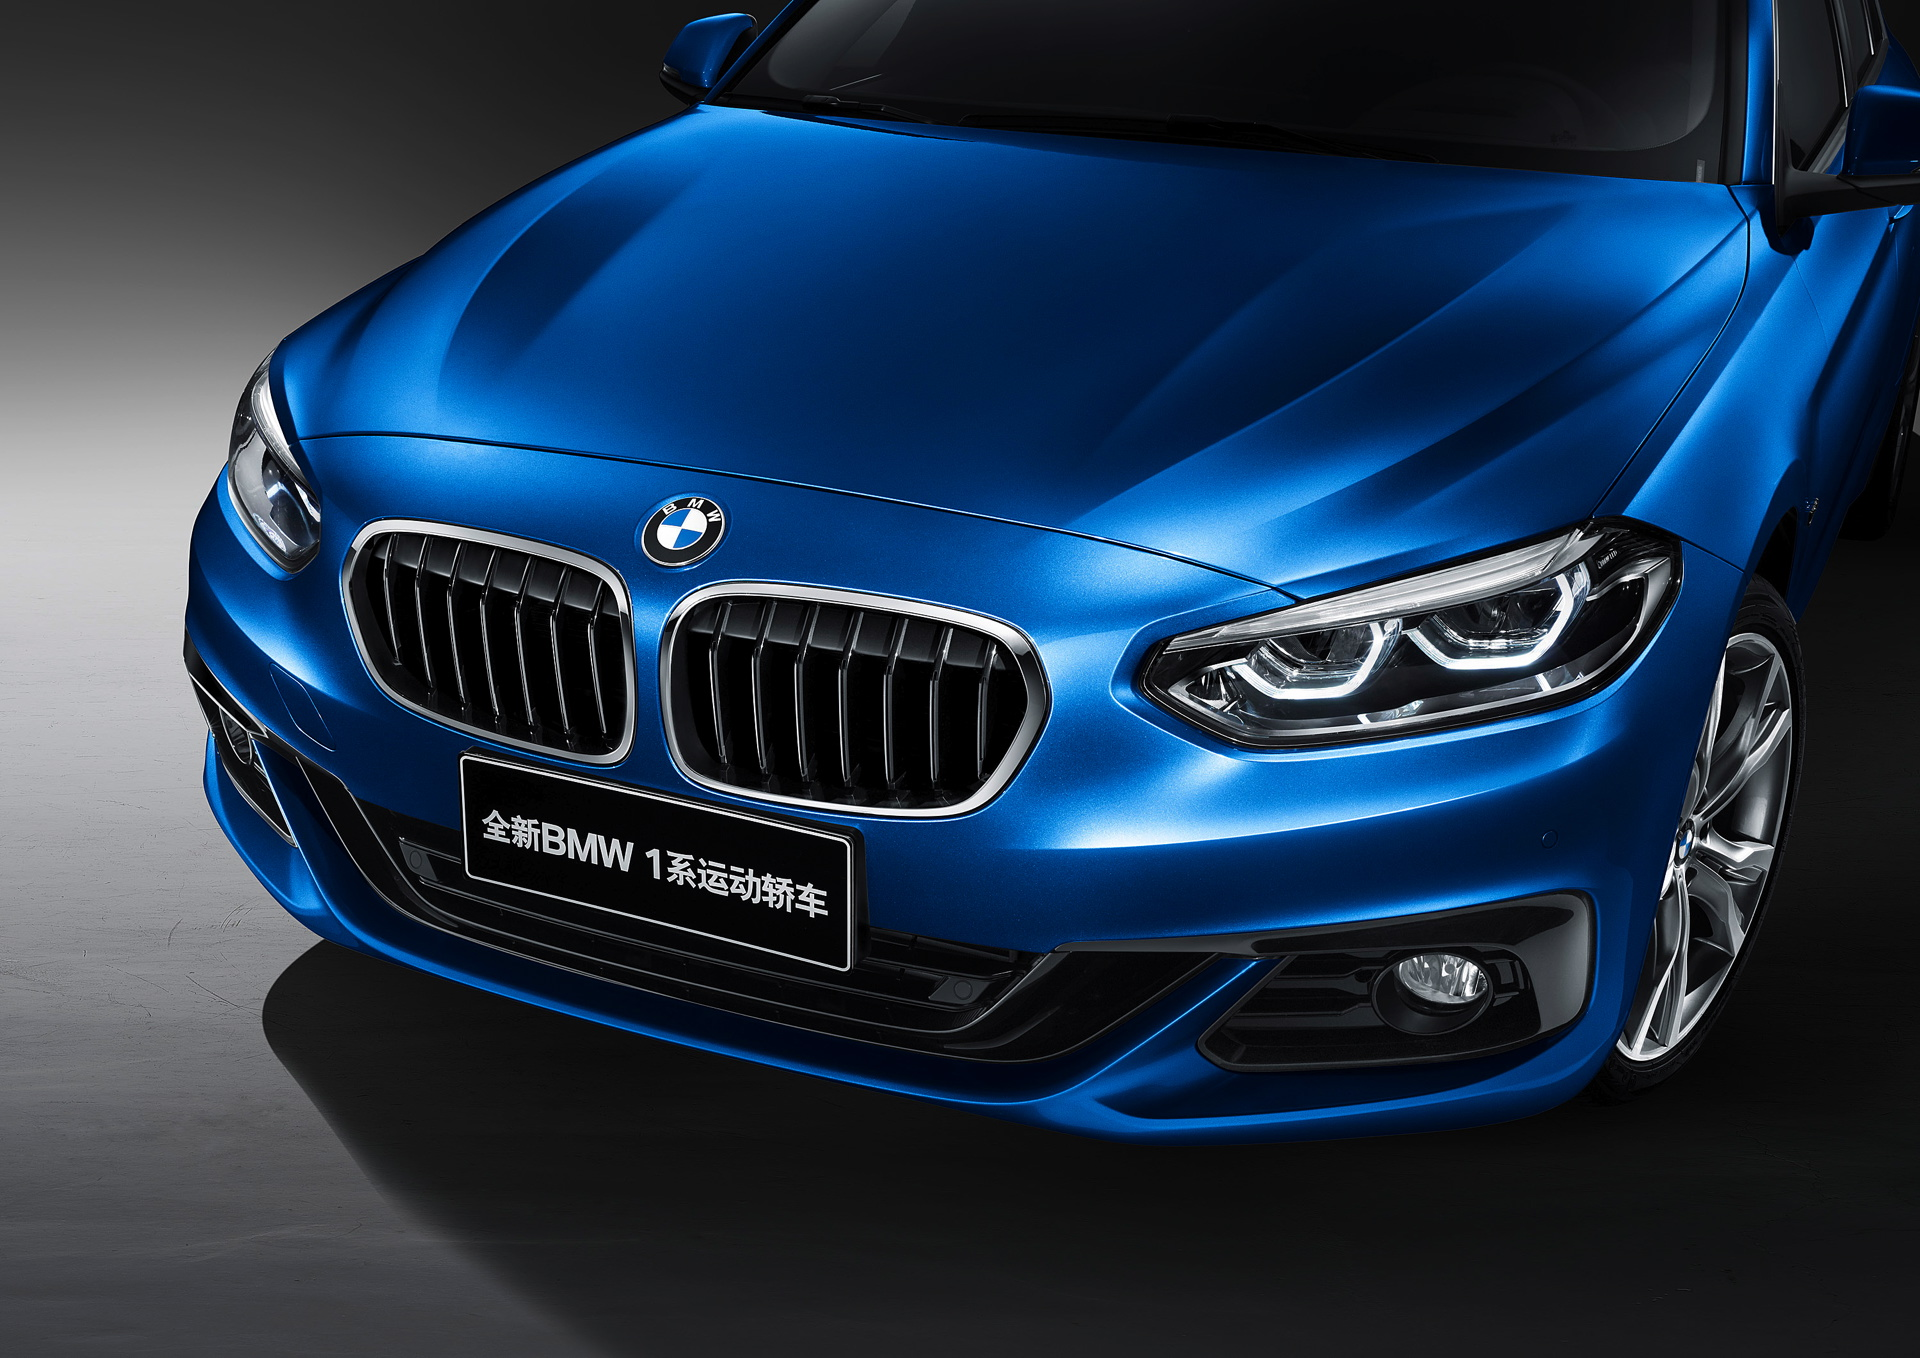 Shenyang Bmw Bmw Brilliance Automotive Shenyang Production